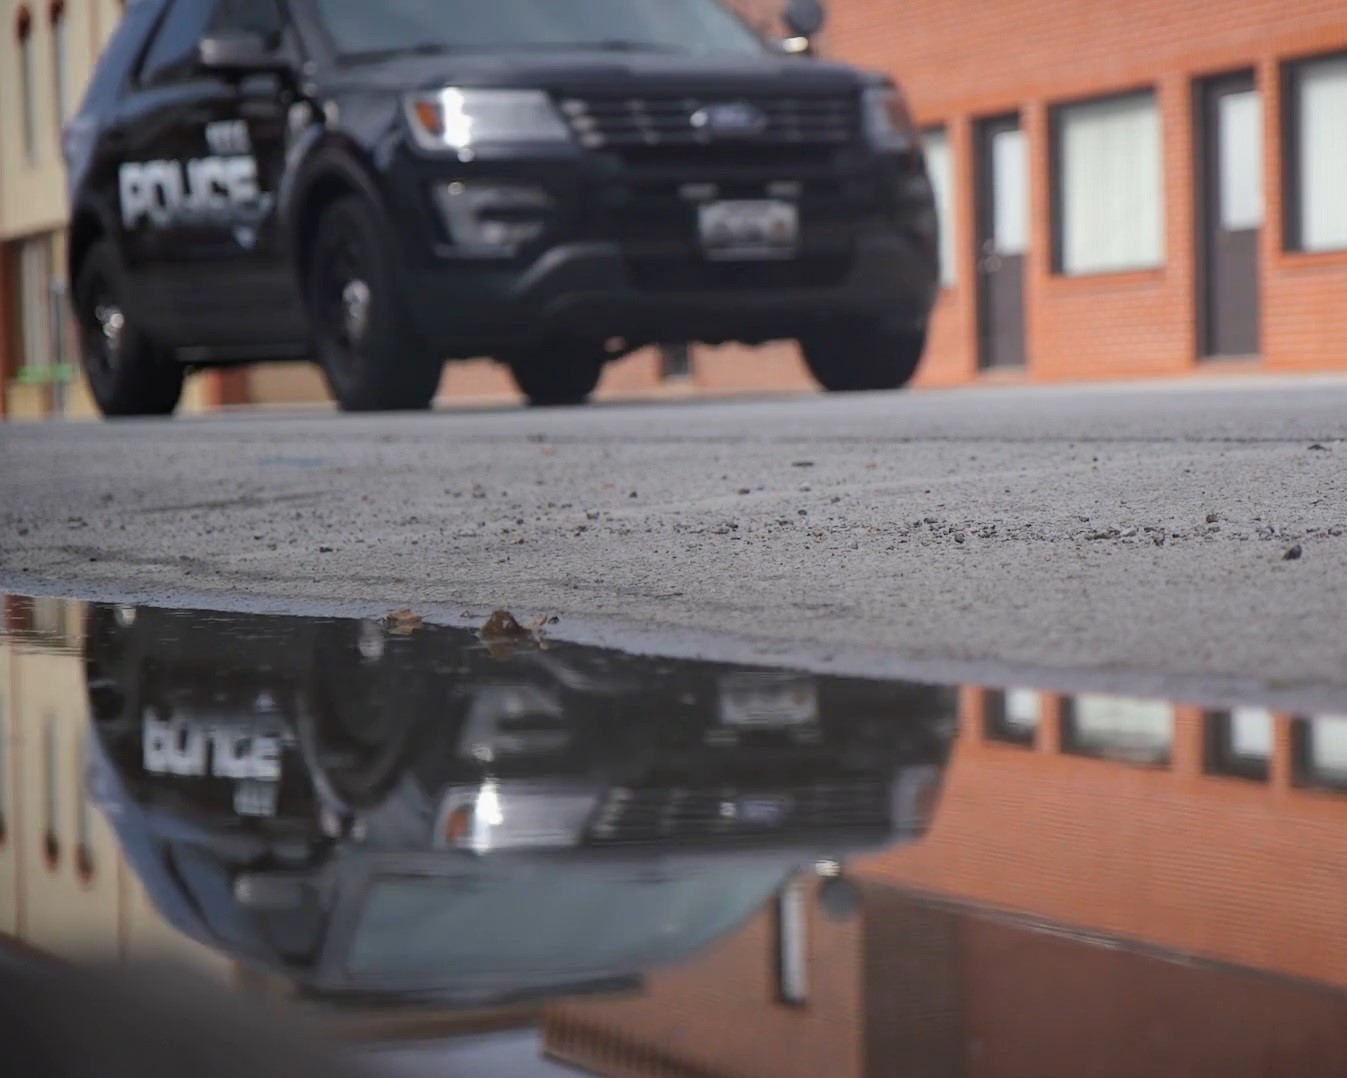 REFLECTION OF A PATROL CAR